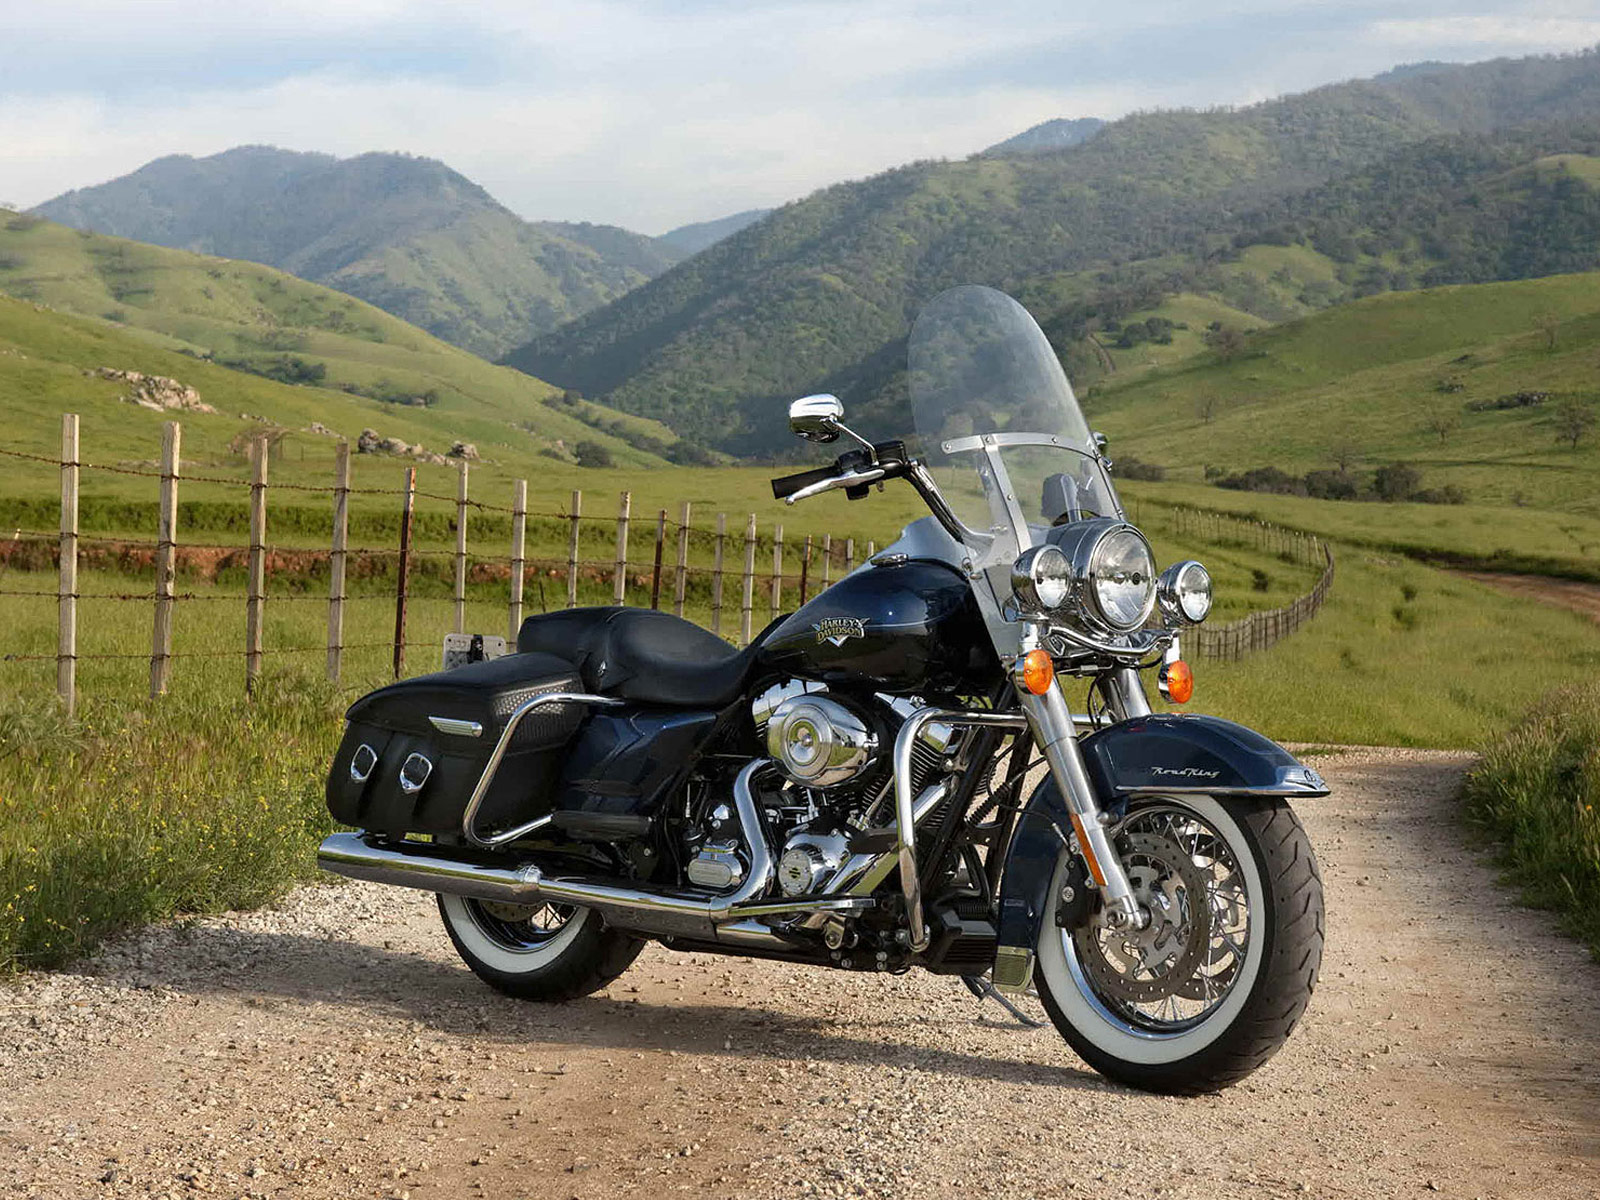 2012 harleydavidson flhrc road king classic pictures. Black Bedroom Furniture Sets. Home Design Ideas